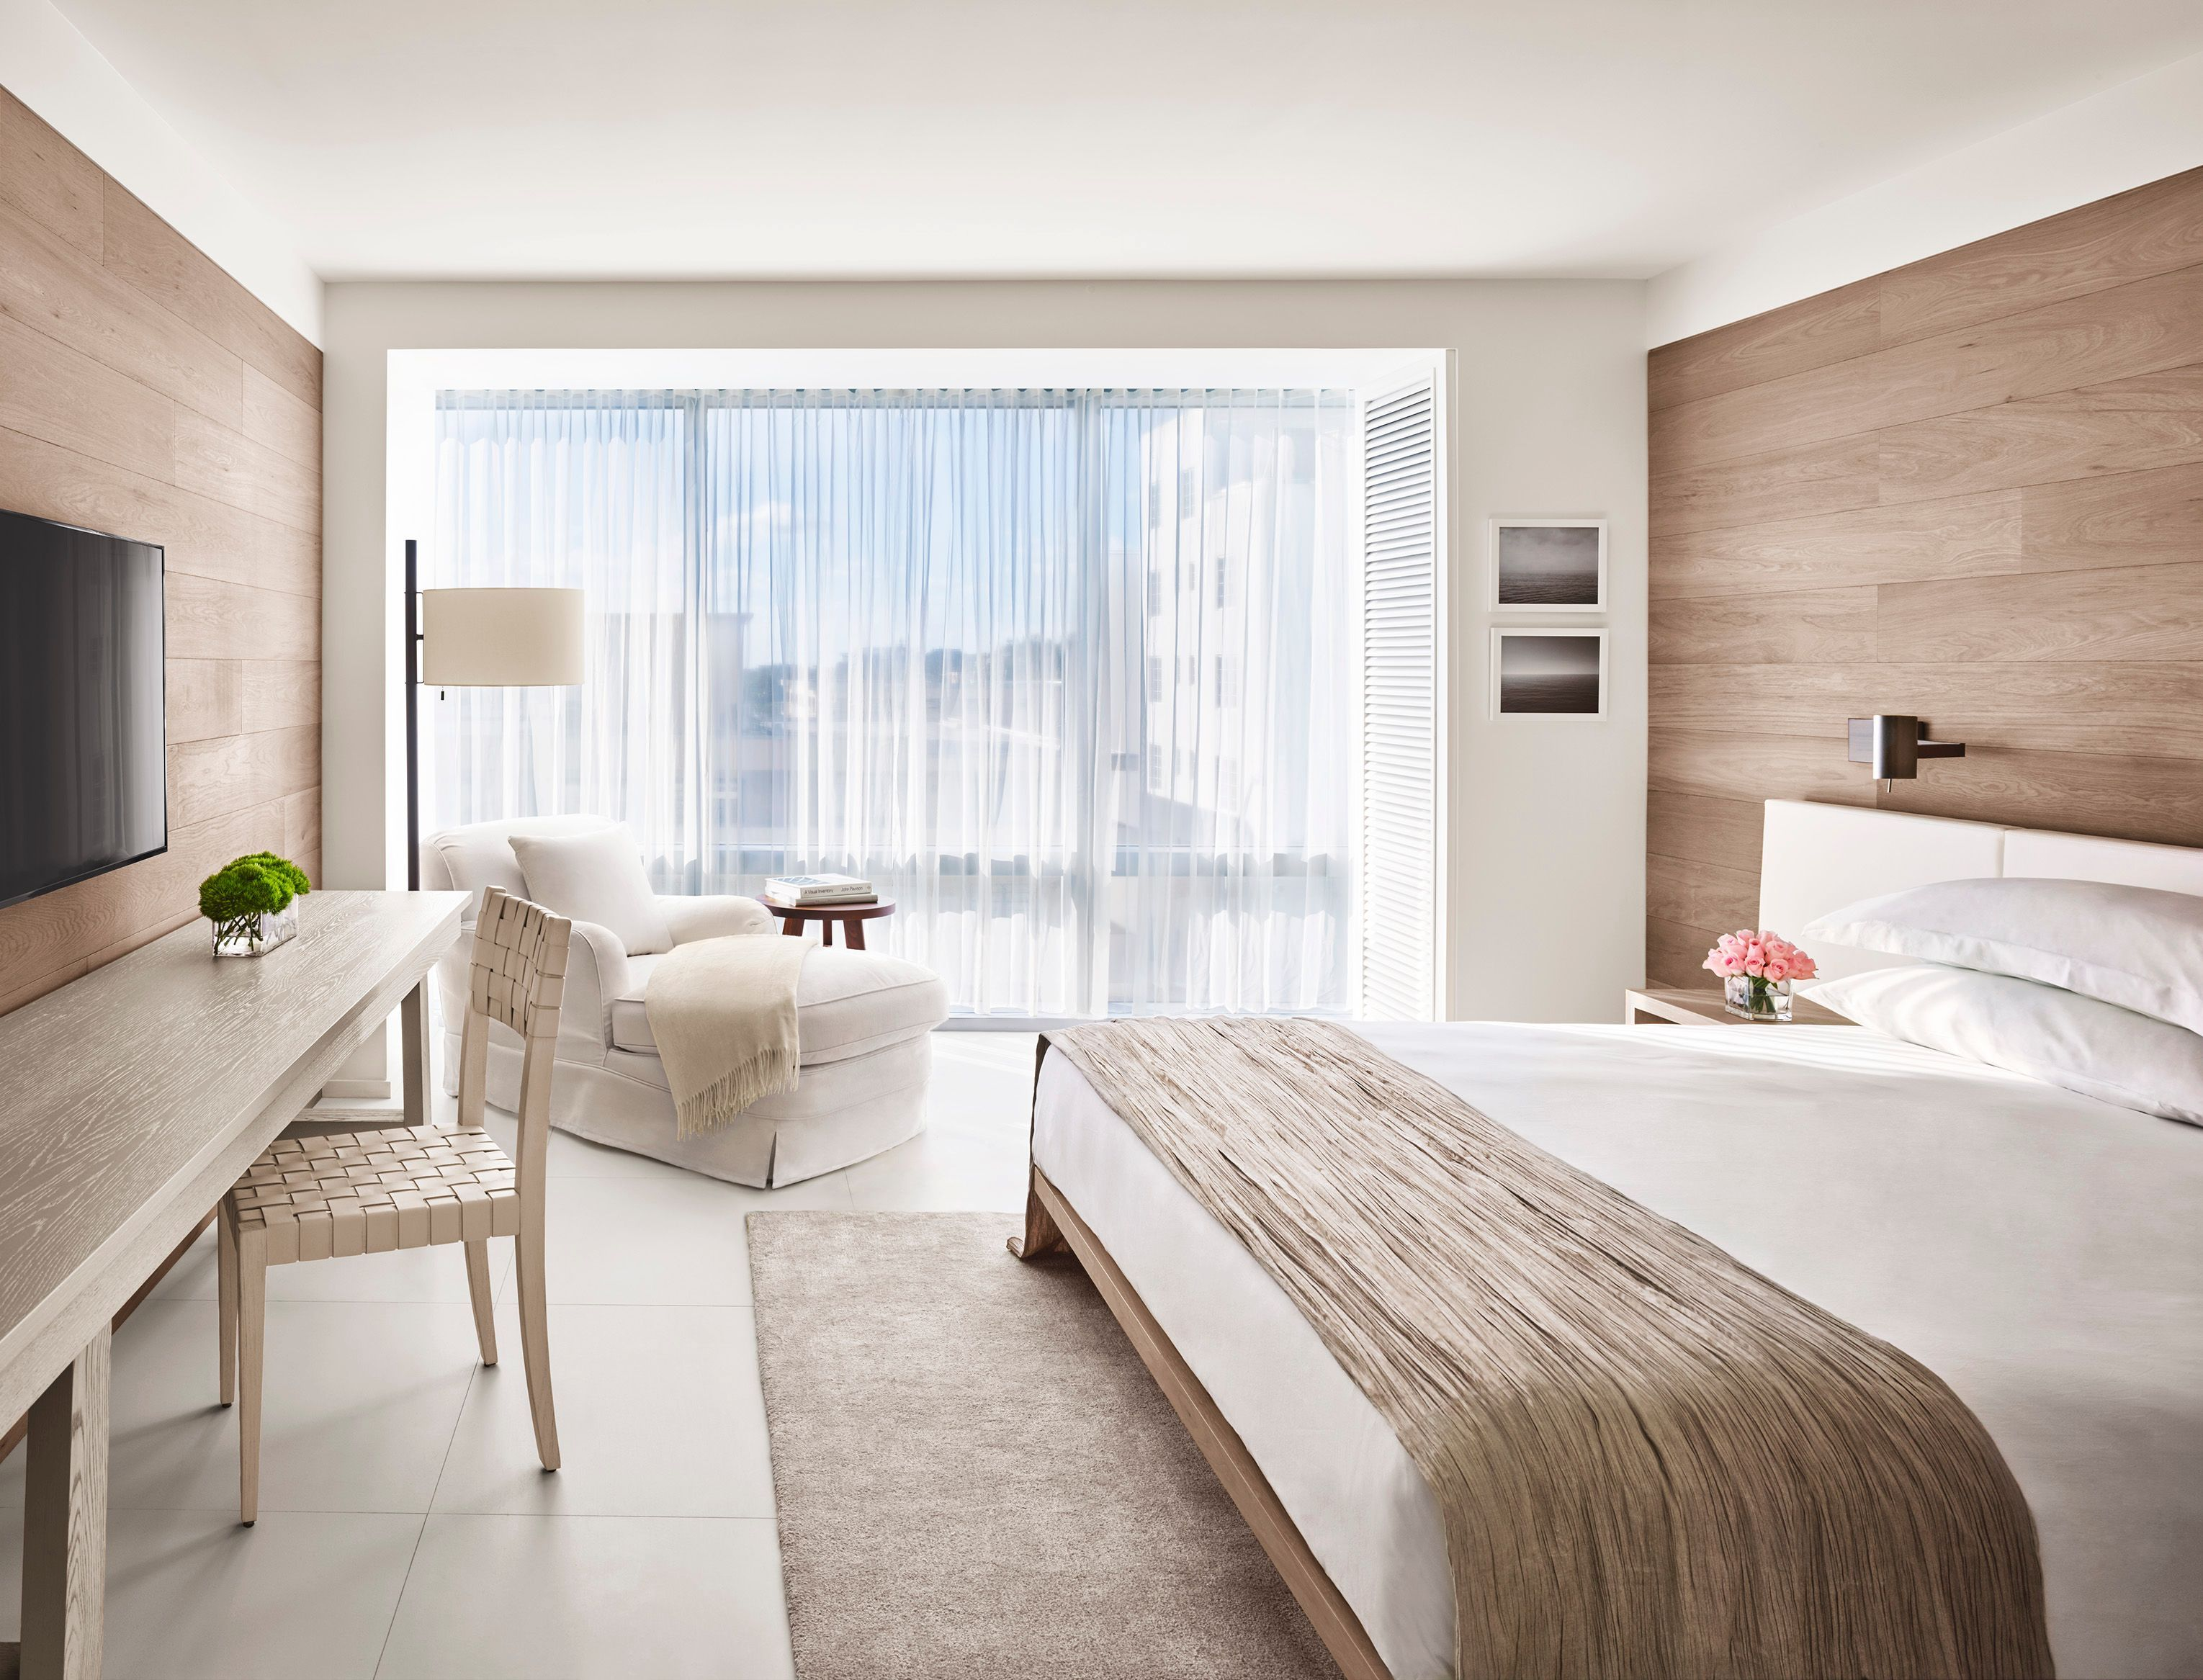 Yabu pushelberg the miami beach edition bedroom luxury for Small luxury hotels chicago